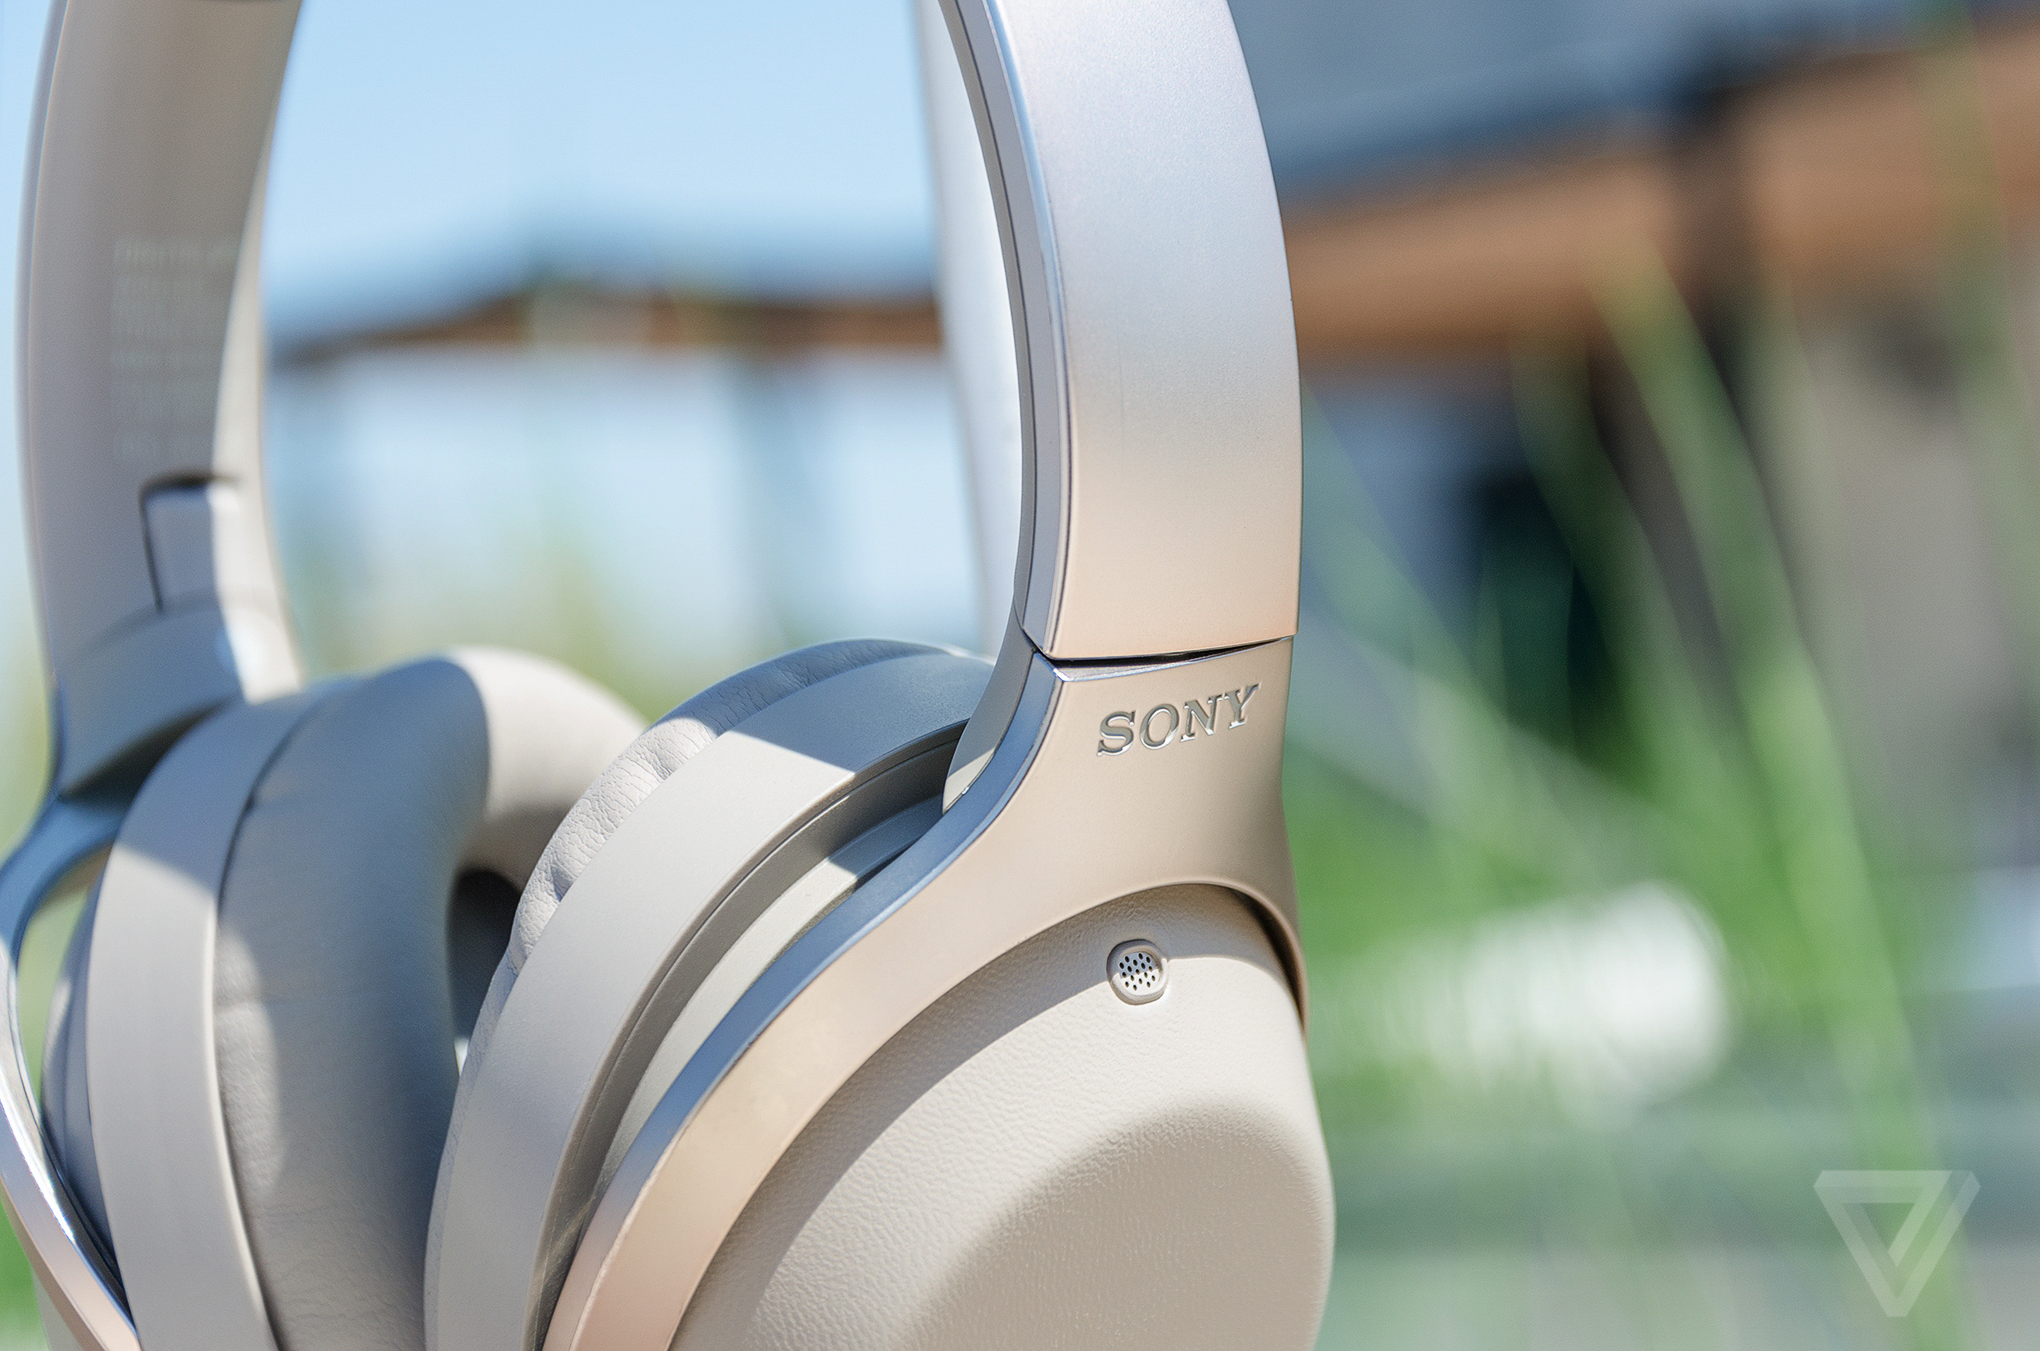 sony 39 s new headphones cancel noise but not people 39 s voices the verge. Black Bedroom Furniture Sets. Home Design Ideas